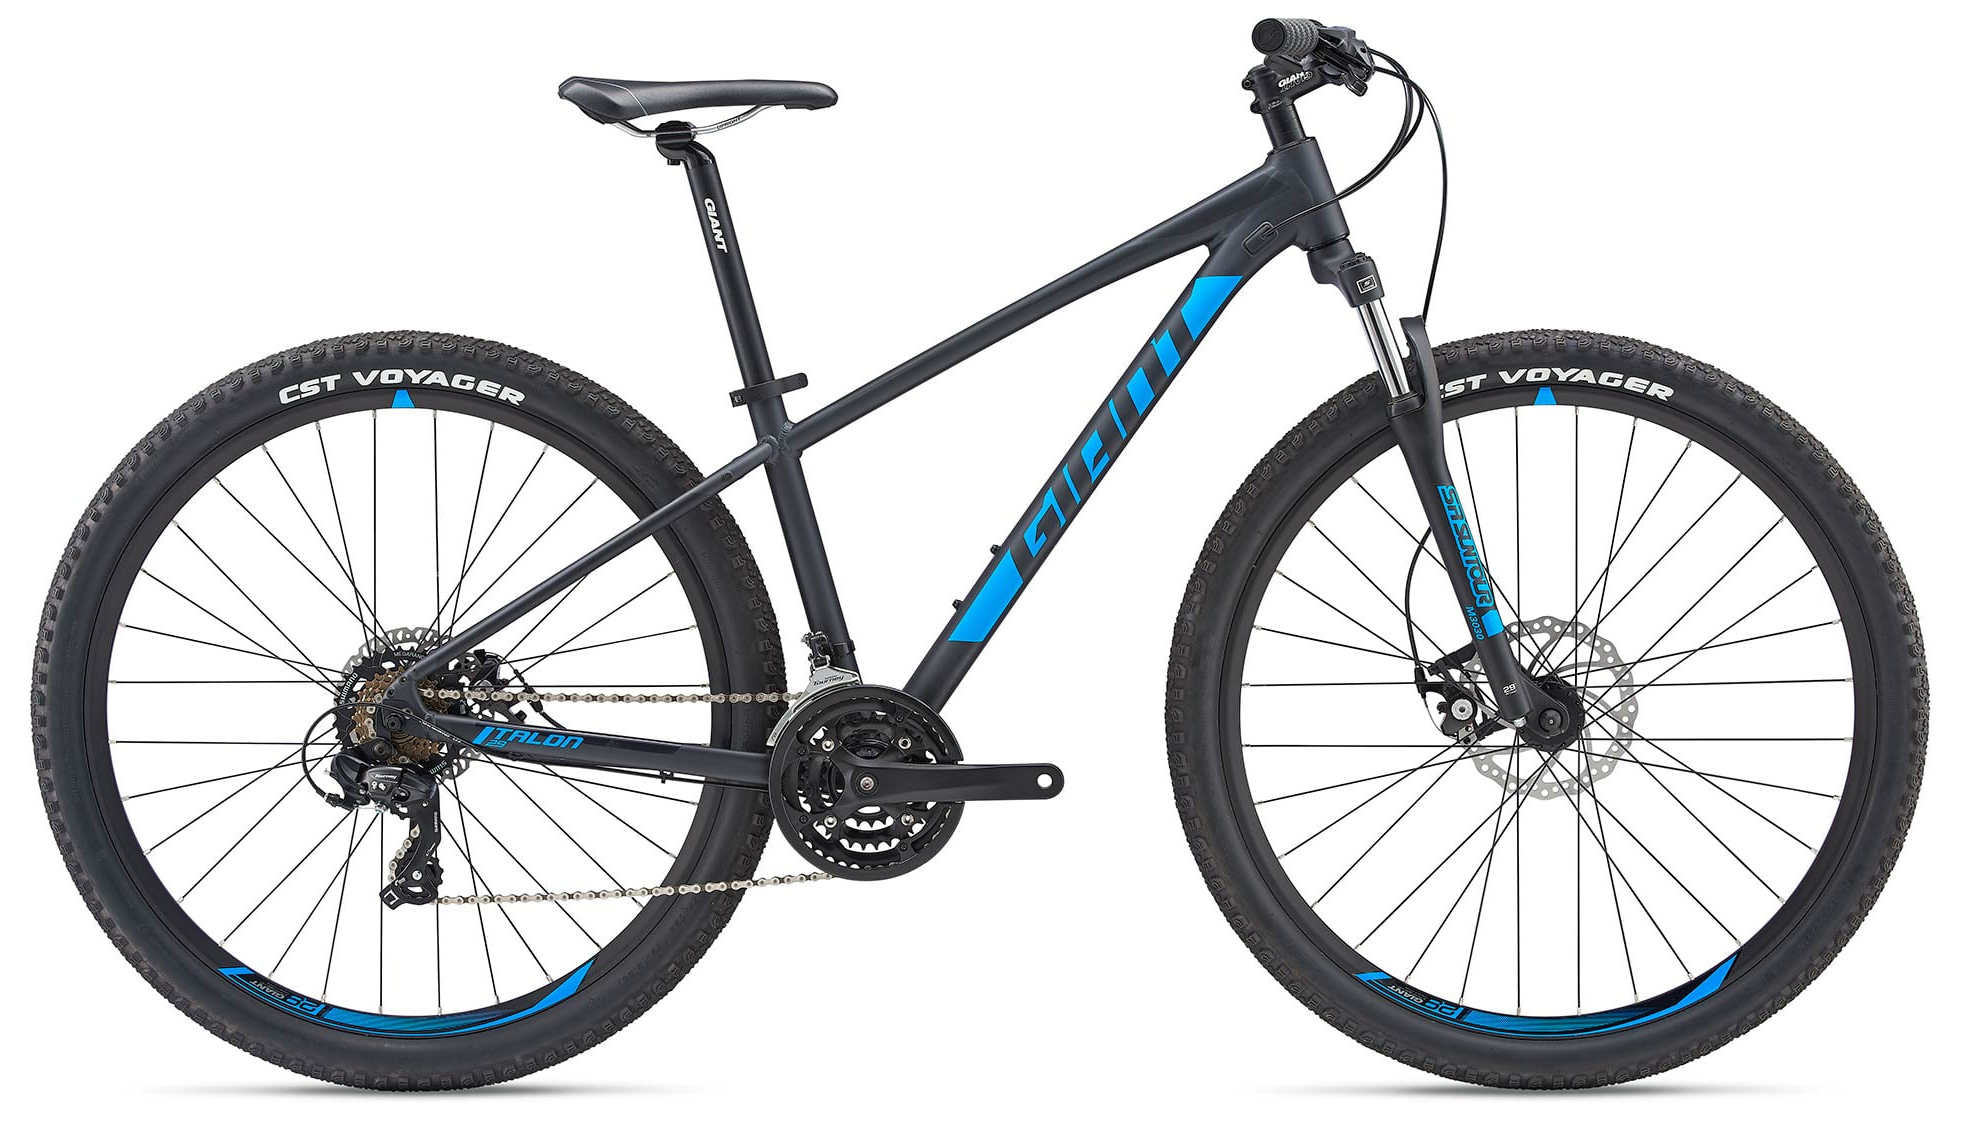 Велосипед Giant Talon 29 4 GI 2019 велосипед giant talon 29er 2 blk 2014